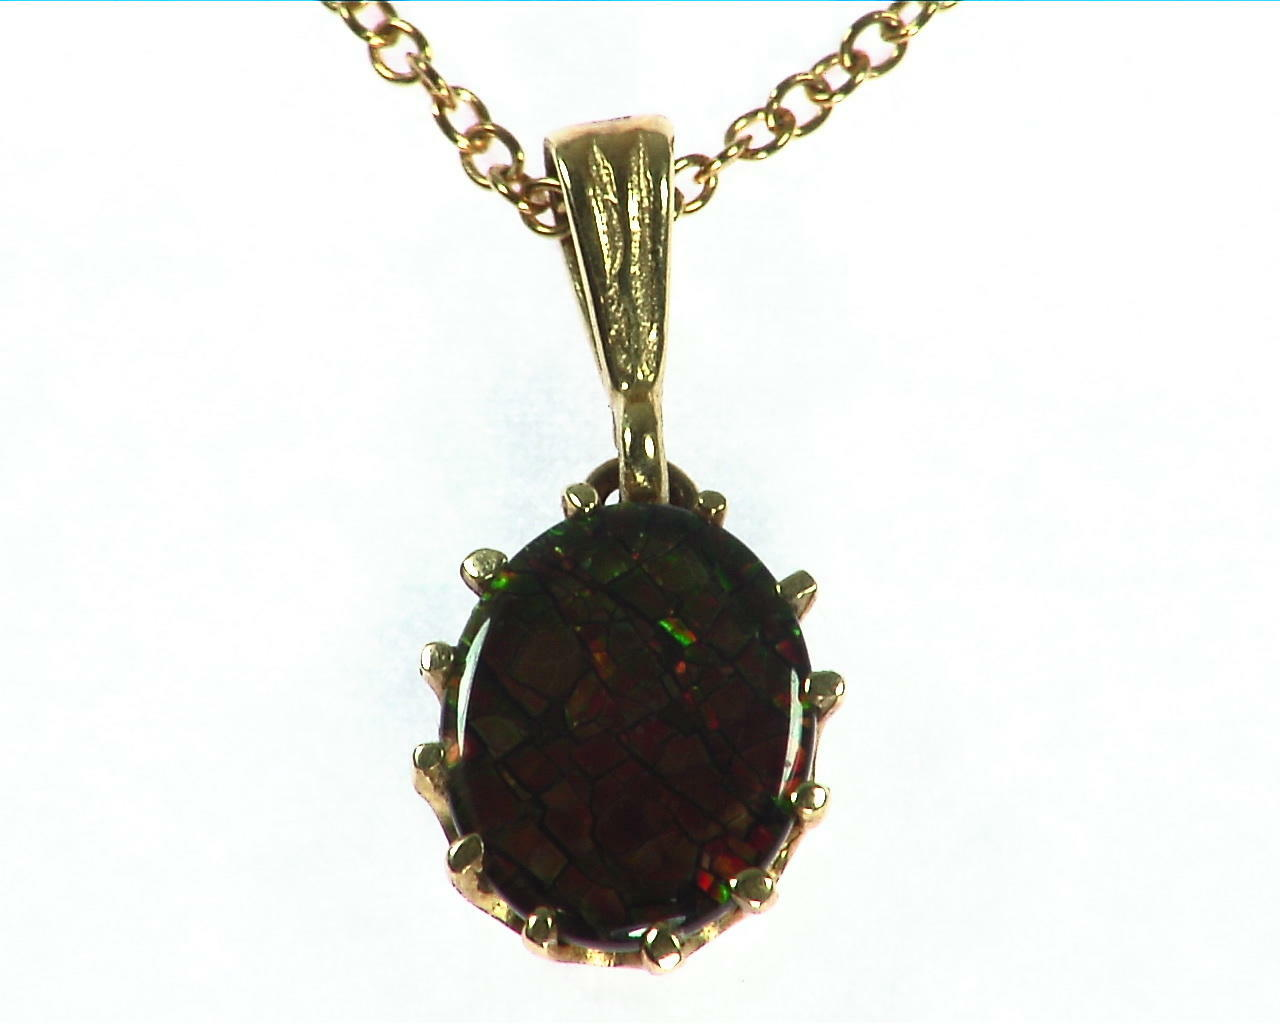 Ammolite Pendent in 14 kt Yellow Gold NFG,932 3